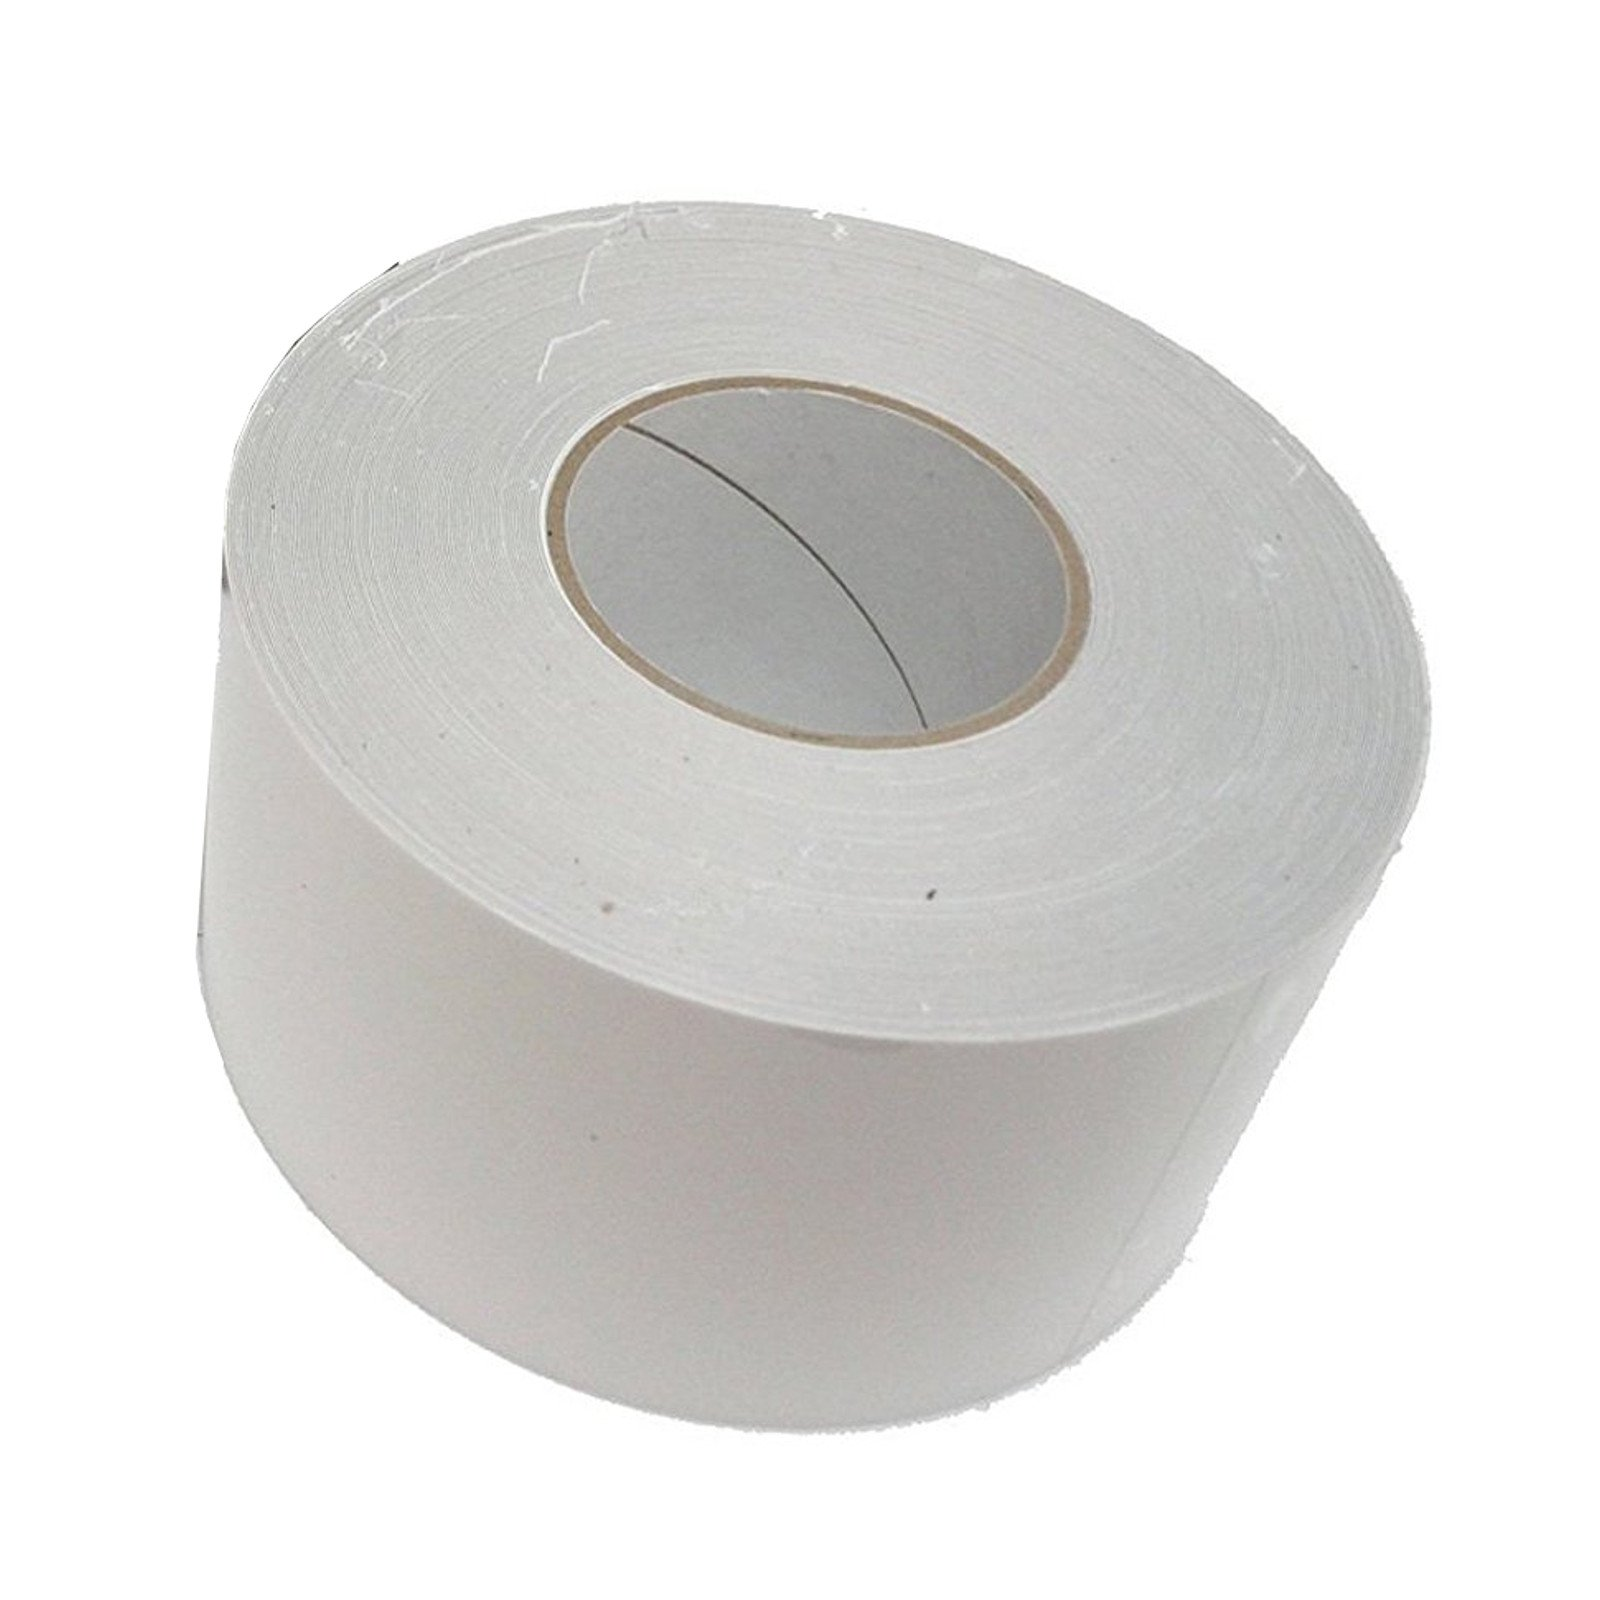 ETC Helicopter Clear Bike Frame Protection Tape - 20 Metres by ETC (Image #3)